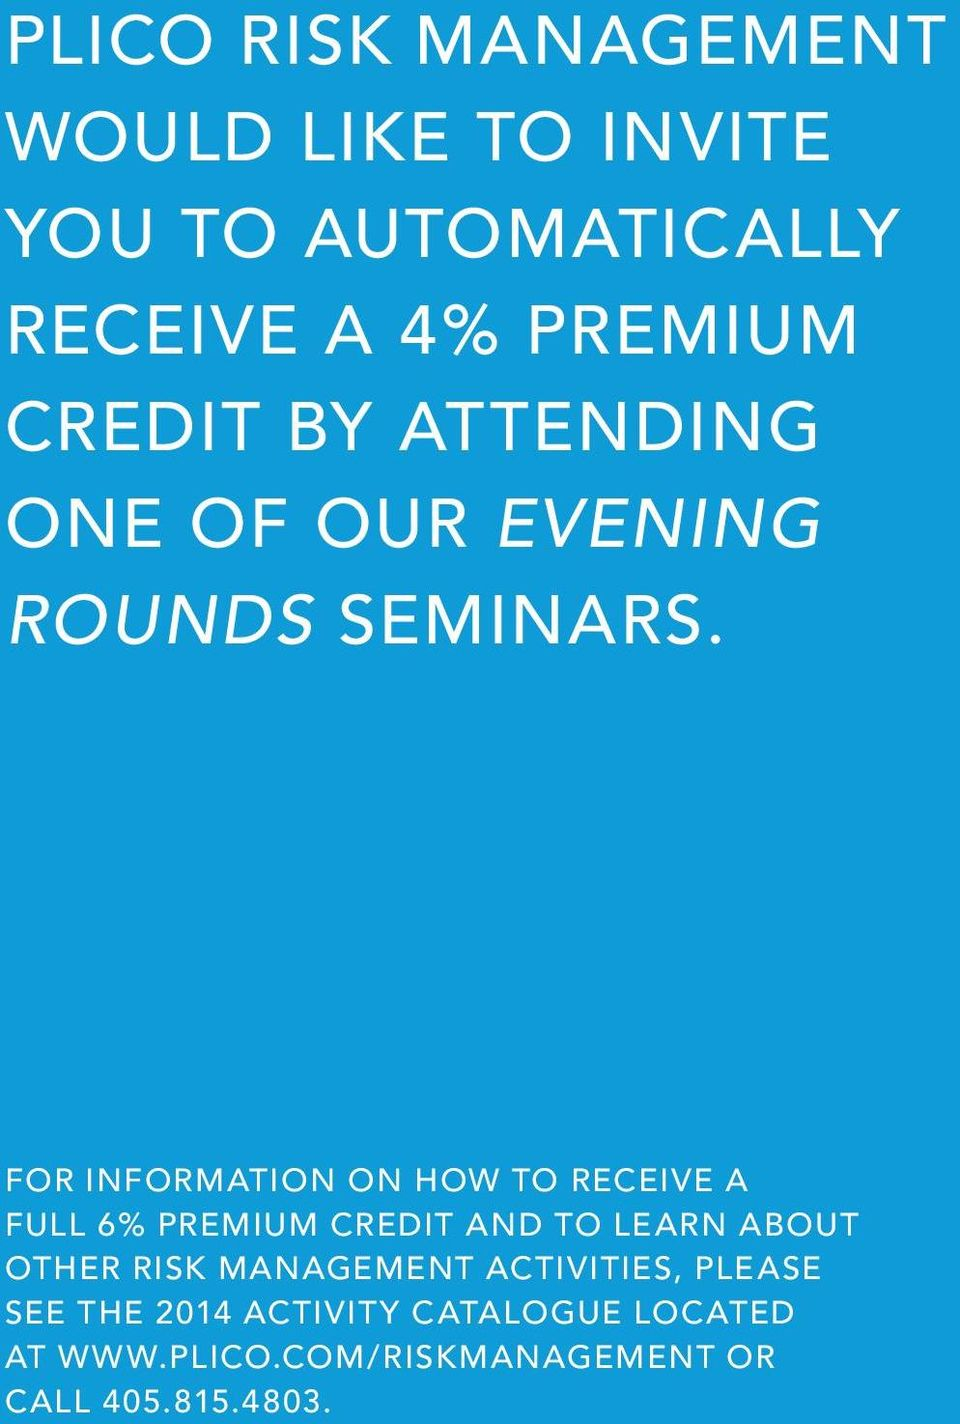 FOR INFORMATION ON HOW TO RECEIVE A FULL 6% PREMIUM CREDIT AND TO LEARN ABOUT OTHER RISK